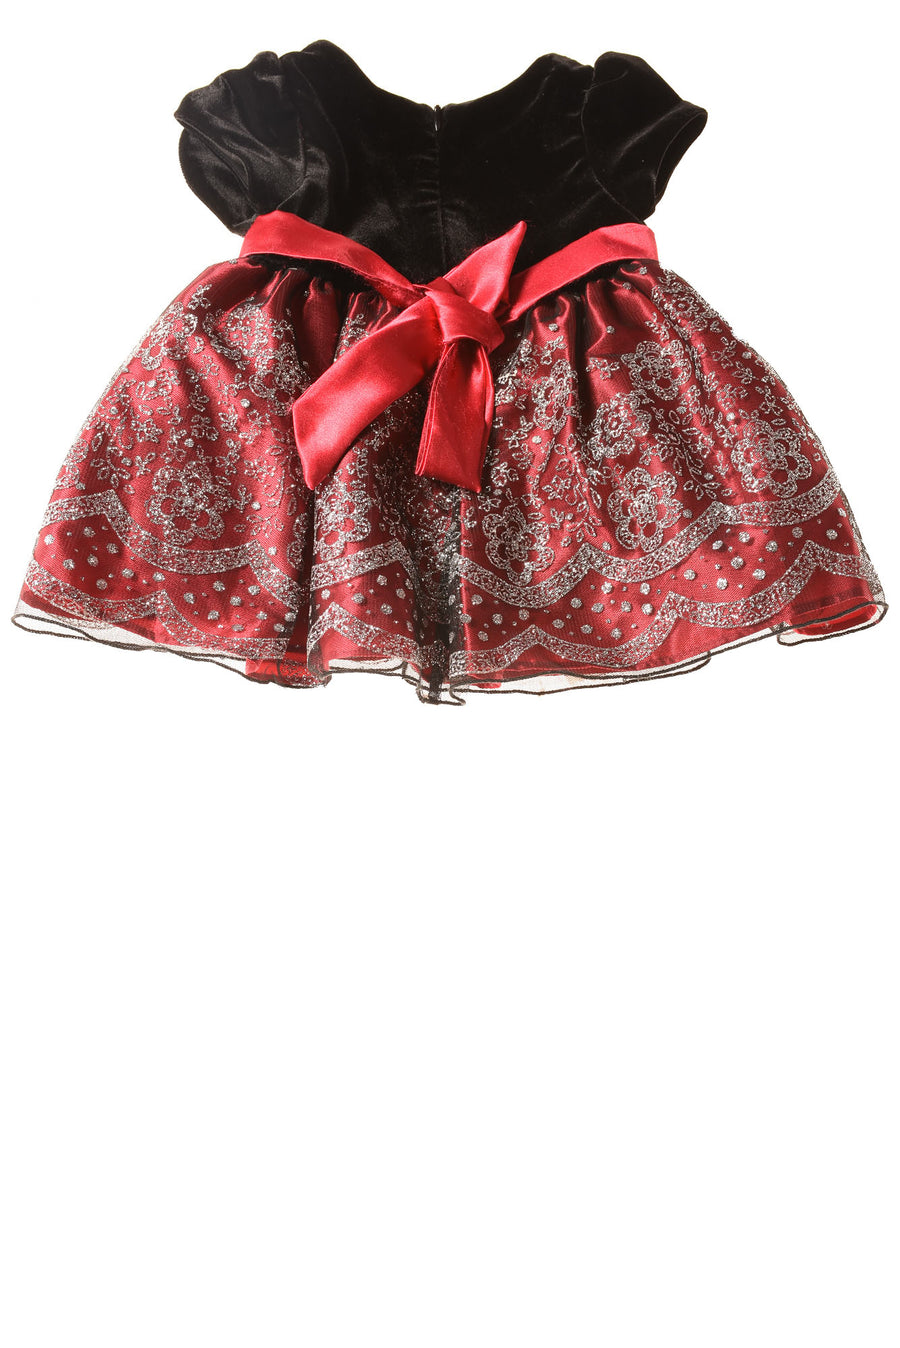 USED Love Baby Girl's Dress 12 Months Red & Black / Metallic